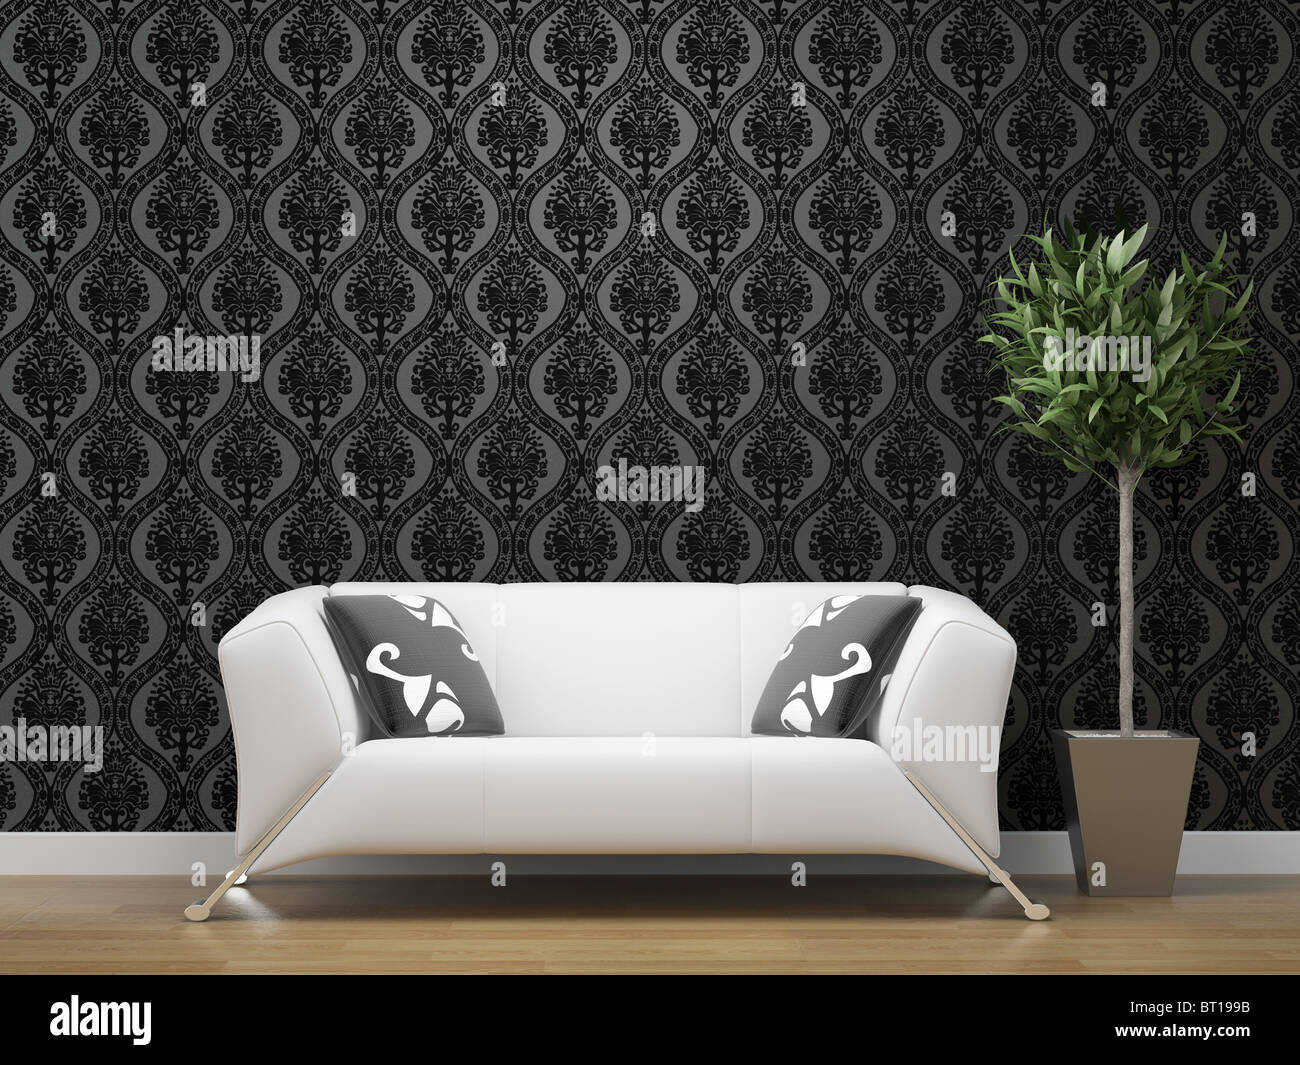 stock photo interior design of white sofa on black and silver wallpaper background with copy space - Interior Design Wall Paper